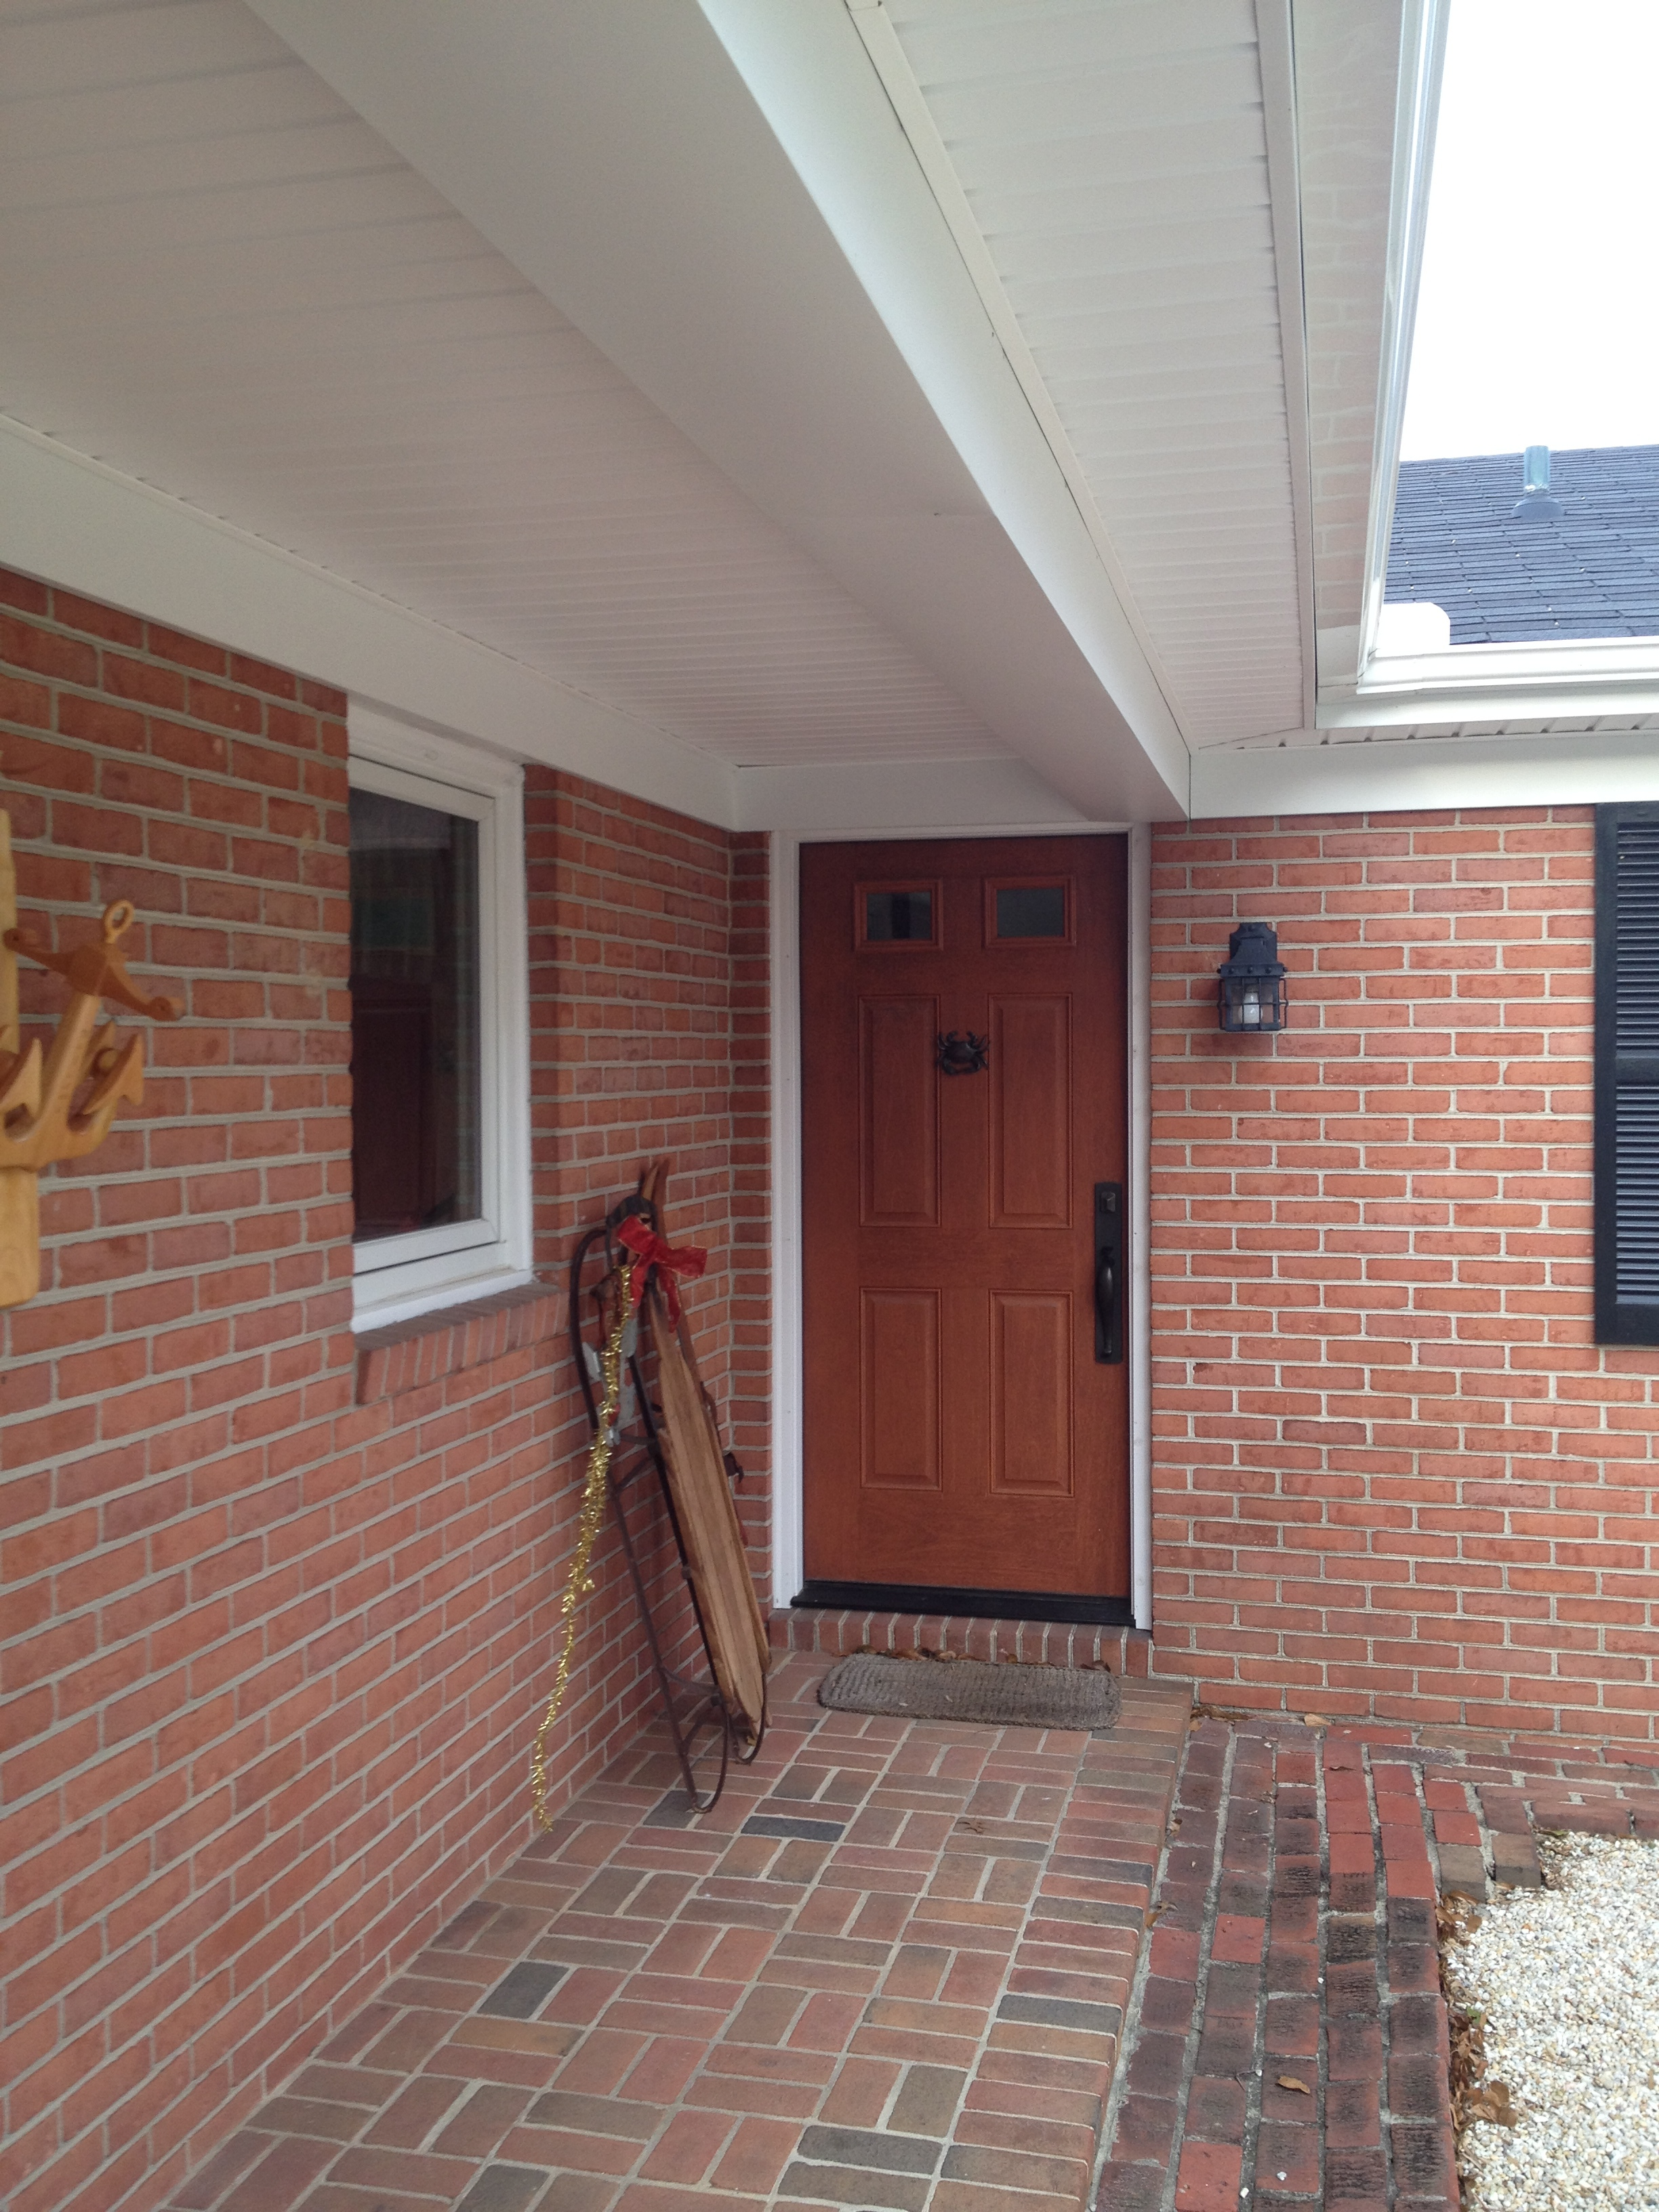 New fiberglass door. The door was stained before it was installed. The fascia and soffit are also new.